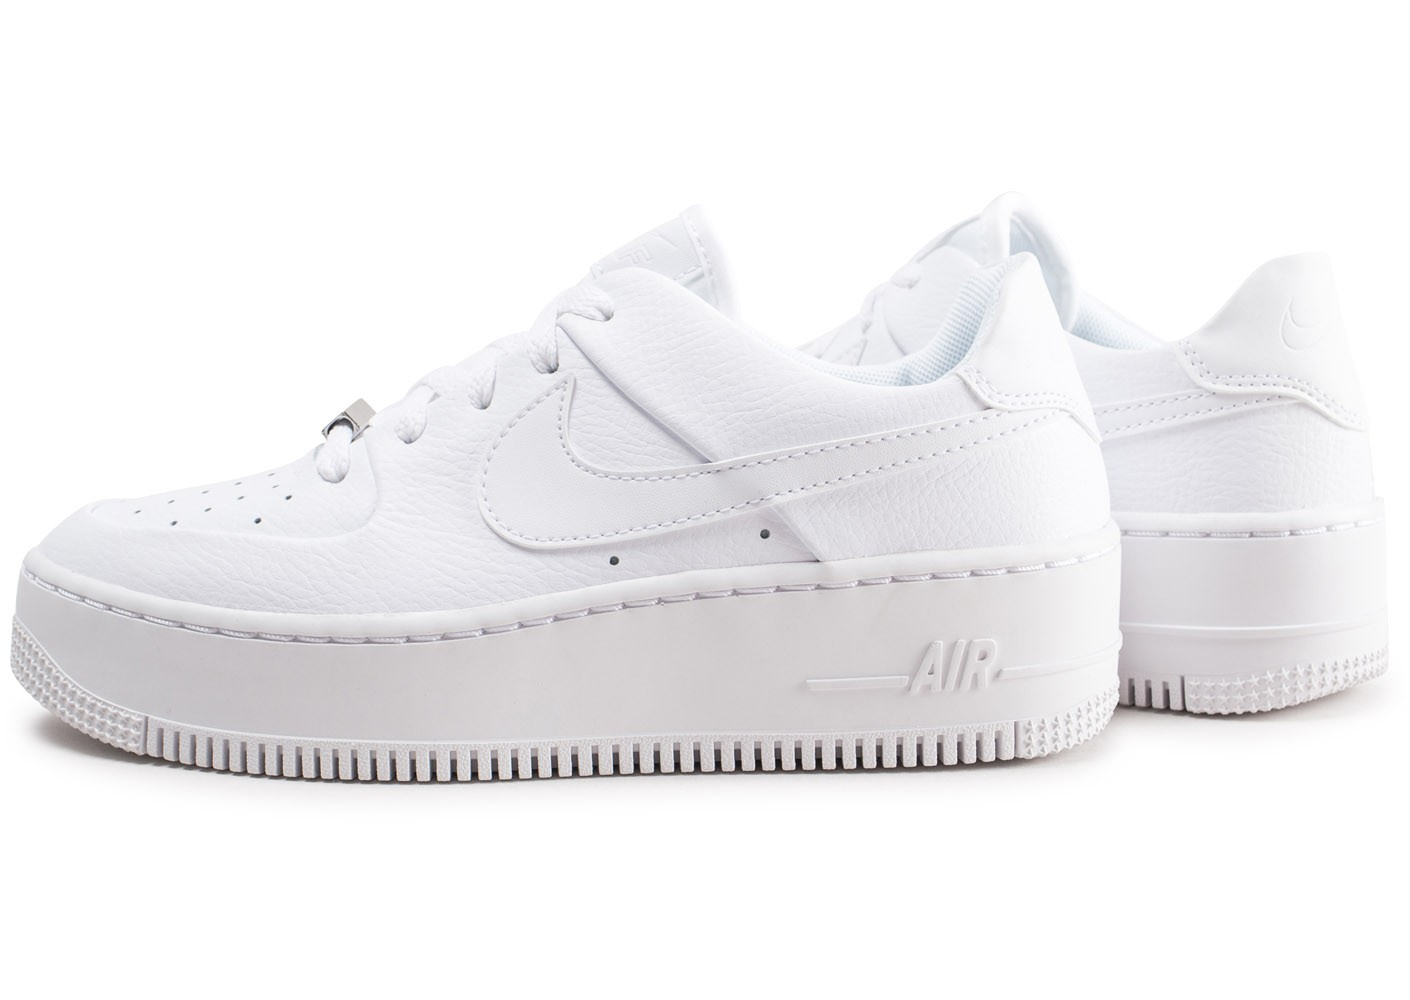 Nike Air Force 1 Sage Low triple blanc femme - Chaussures ...